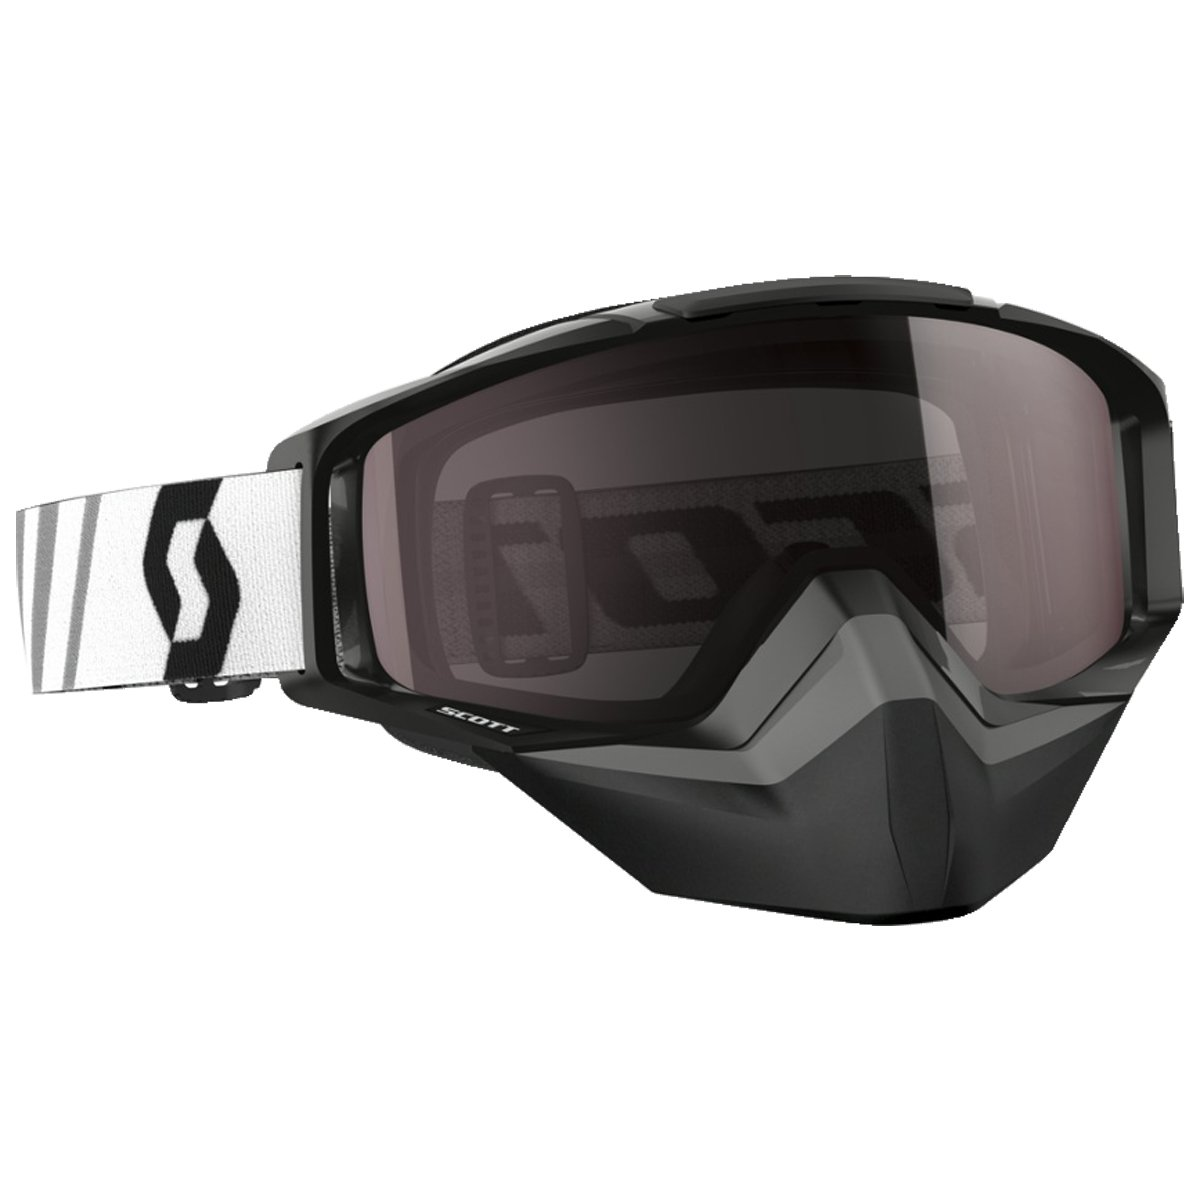 Scott Tyrant Adult Snowmobile Goggles - Black/Chrome / One Size